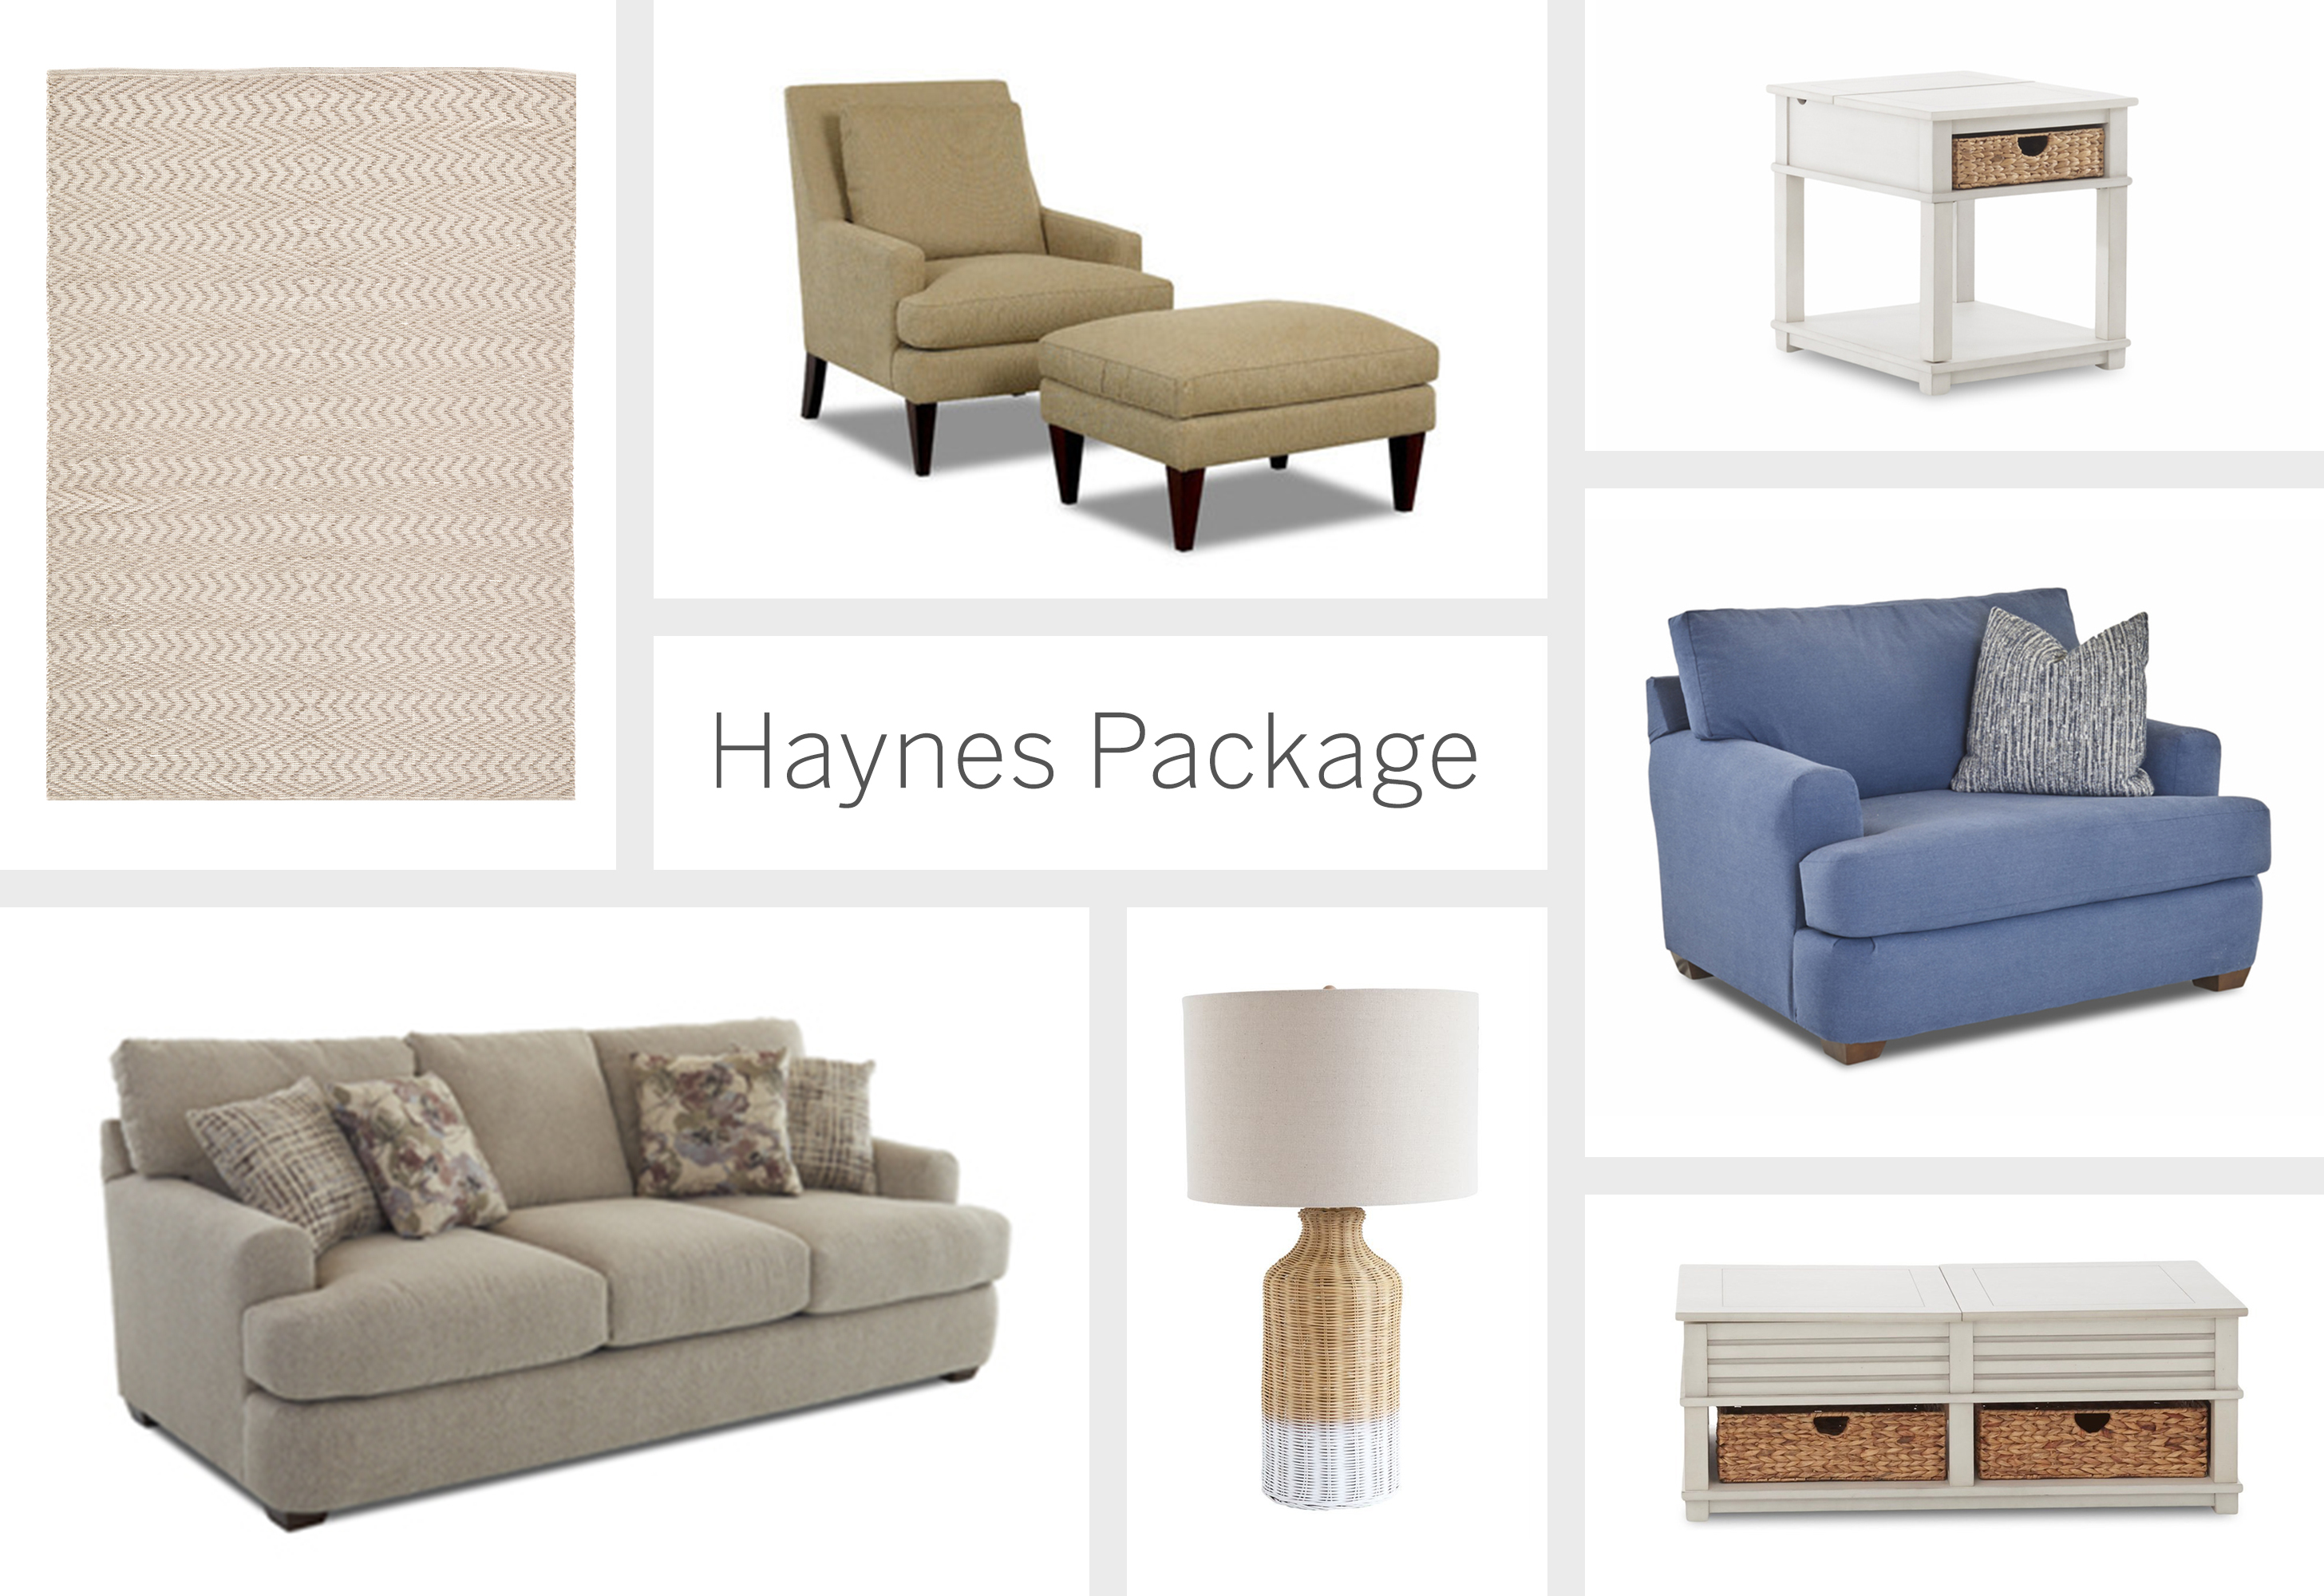 Haynes Furniture Package